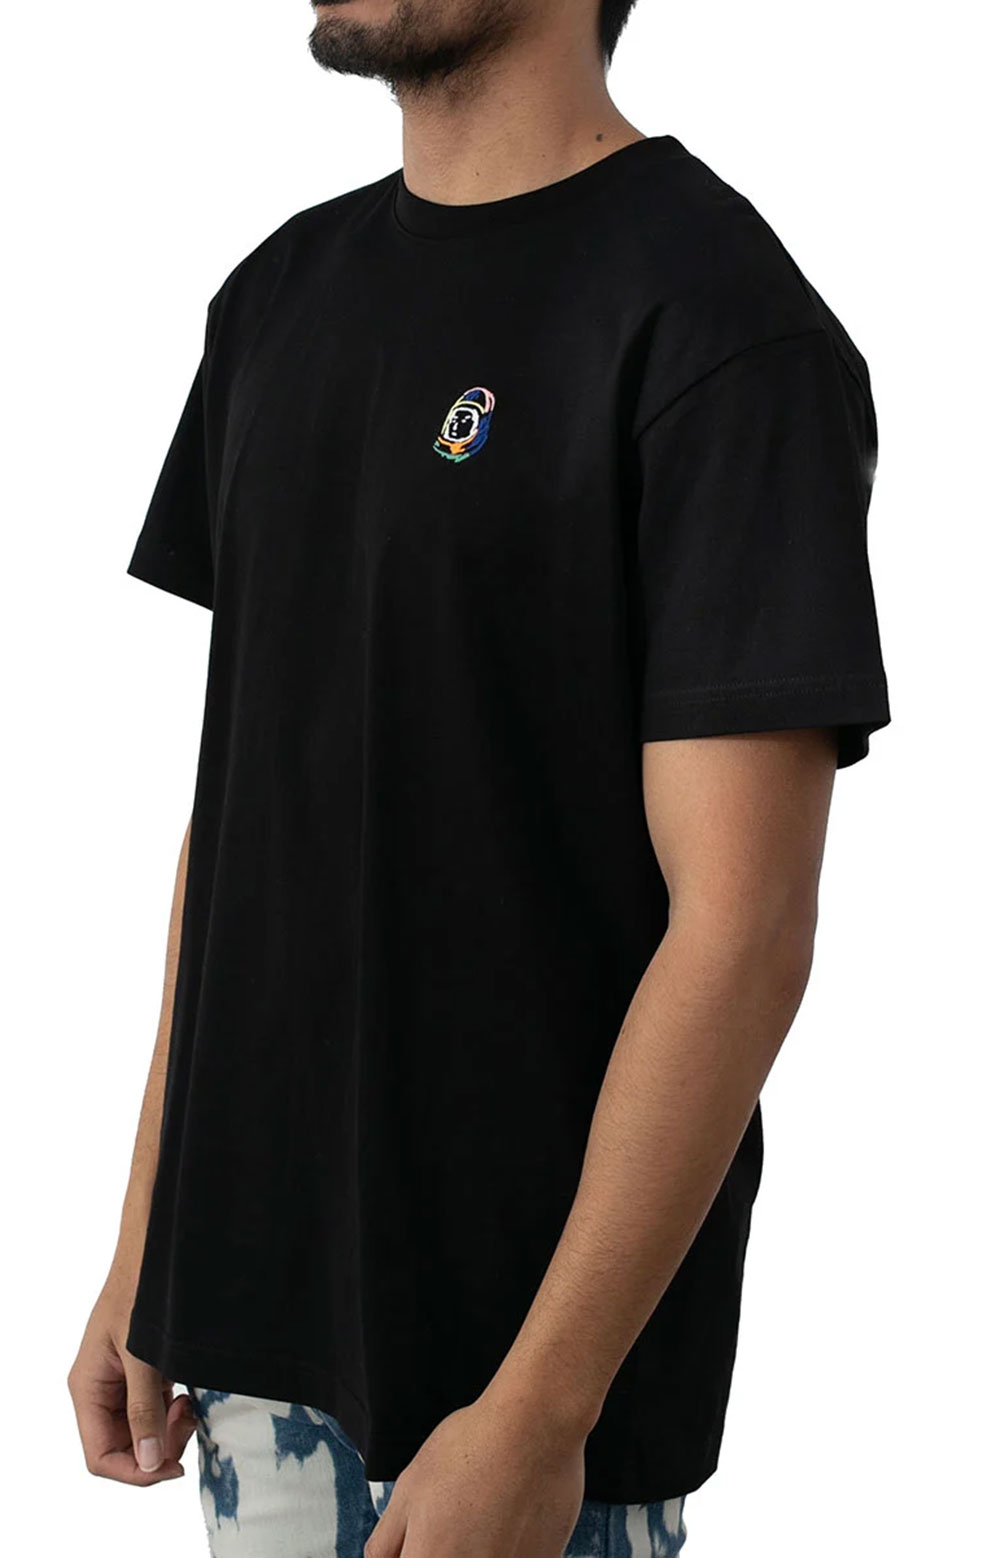 BB Borealis SS Knit Shirt - Black  2